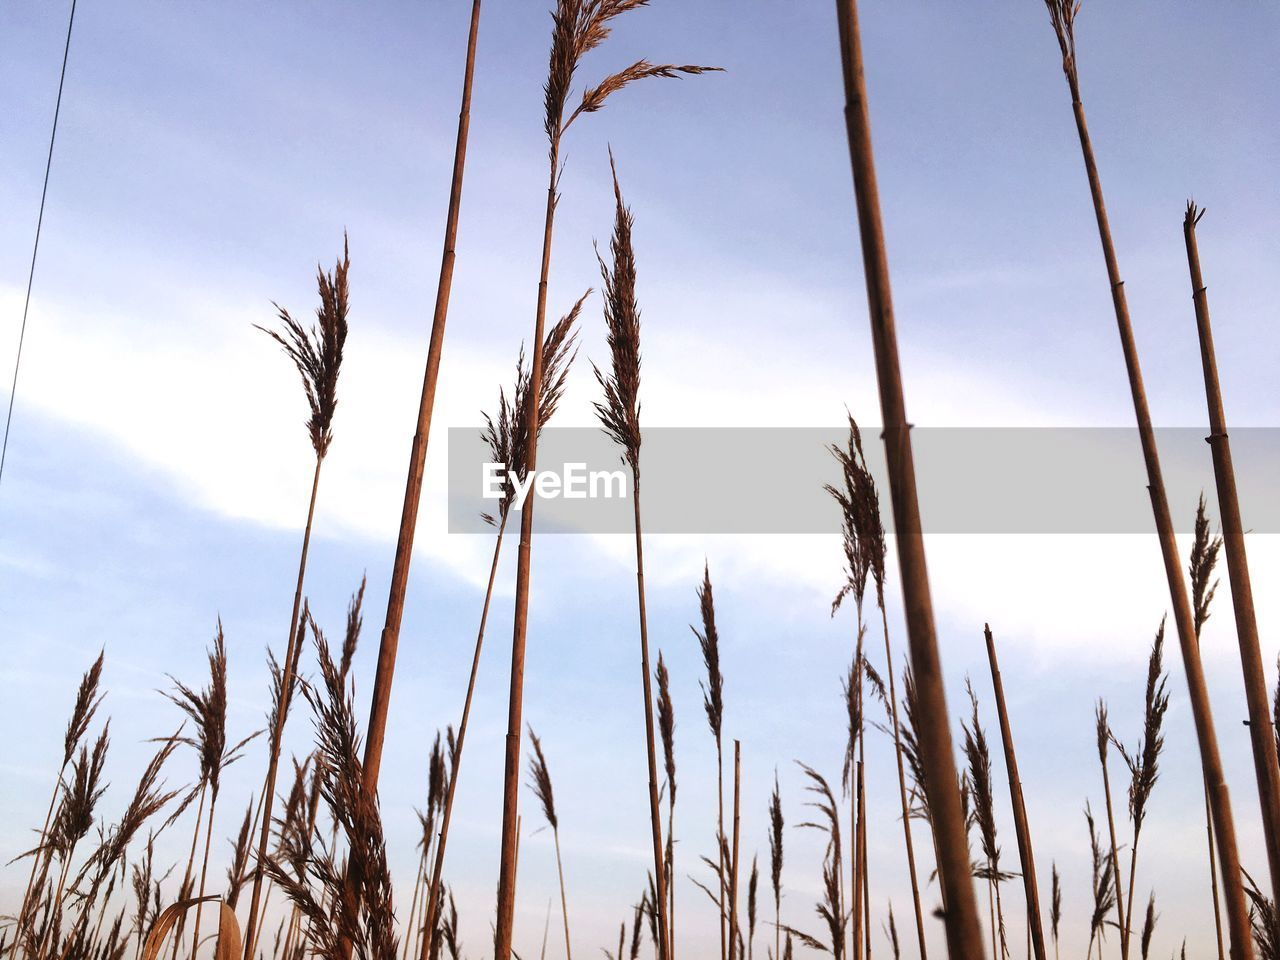 LOW ANGLE VIEW OF PLANTS GROWING IN FIELD AGAINST SKY